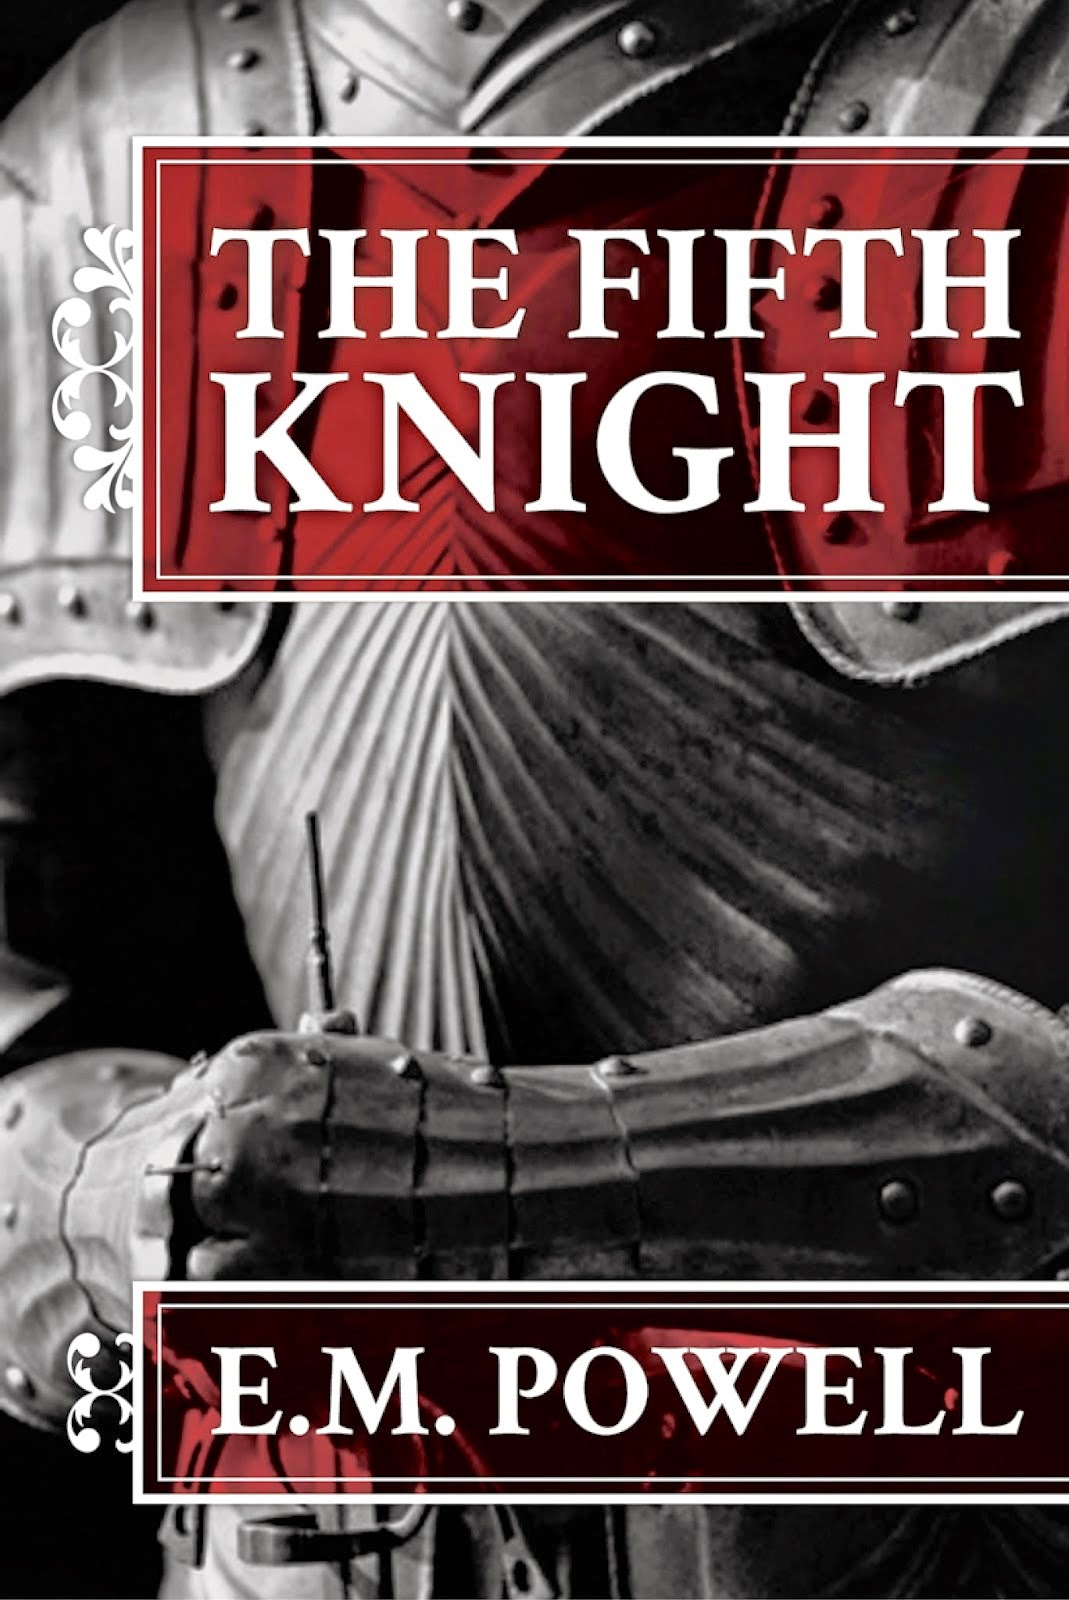 http://www.amazon.co.uk/Fifth-Knight-E-M-Powell-ebook/dp/B00A017O0I/ref=sr_1_1?ie=UTF8&qid=1400485439&sr=8-1&keywords=the+fifth+knight